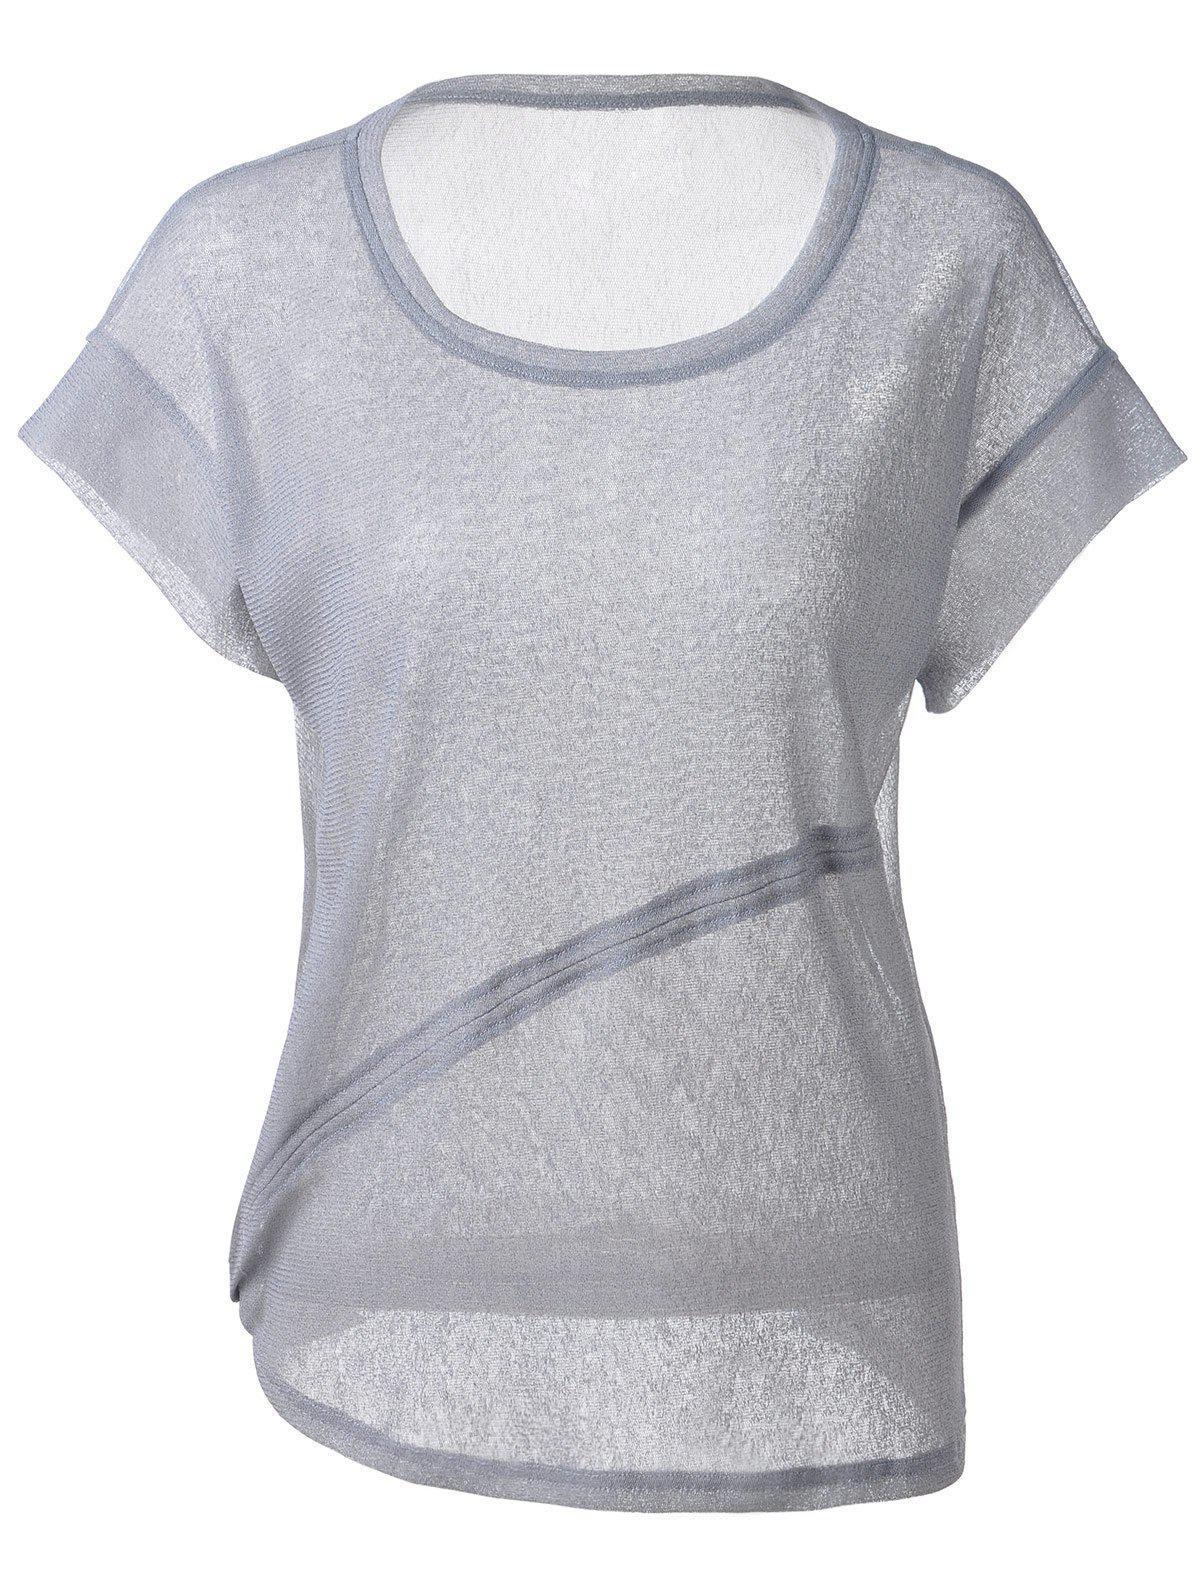 Fashionable Women's Loose-Fitting Scoop Neck Cut-Off Rule T-shirt - L BLUE GRAY